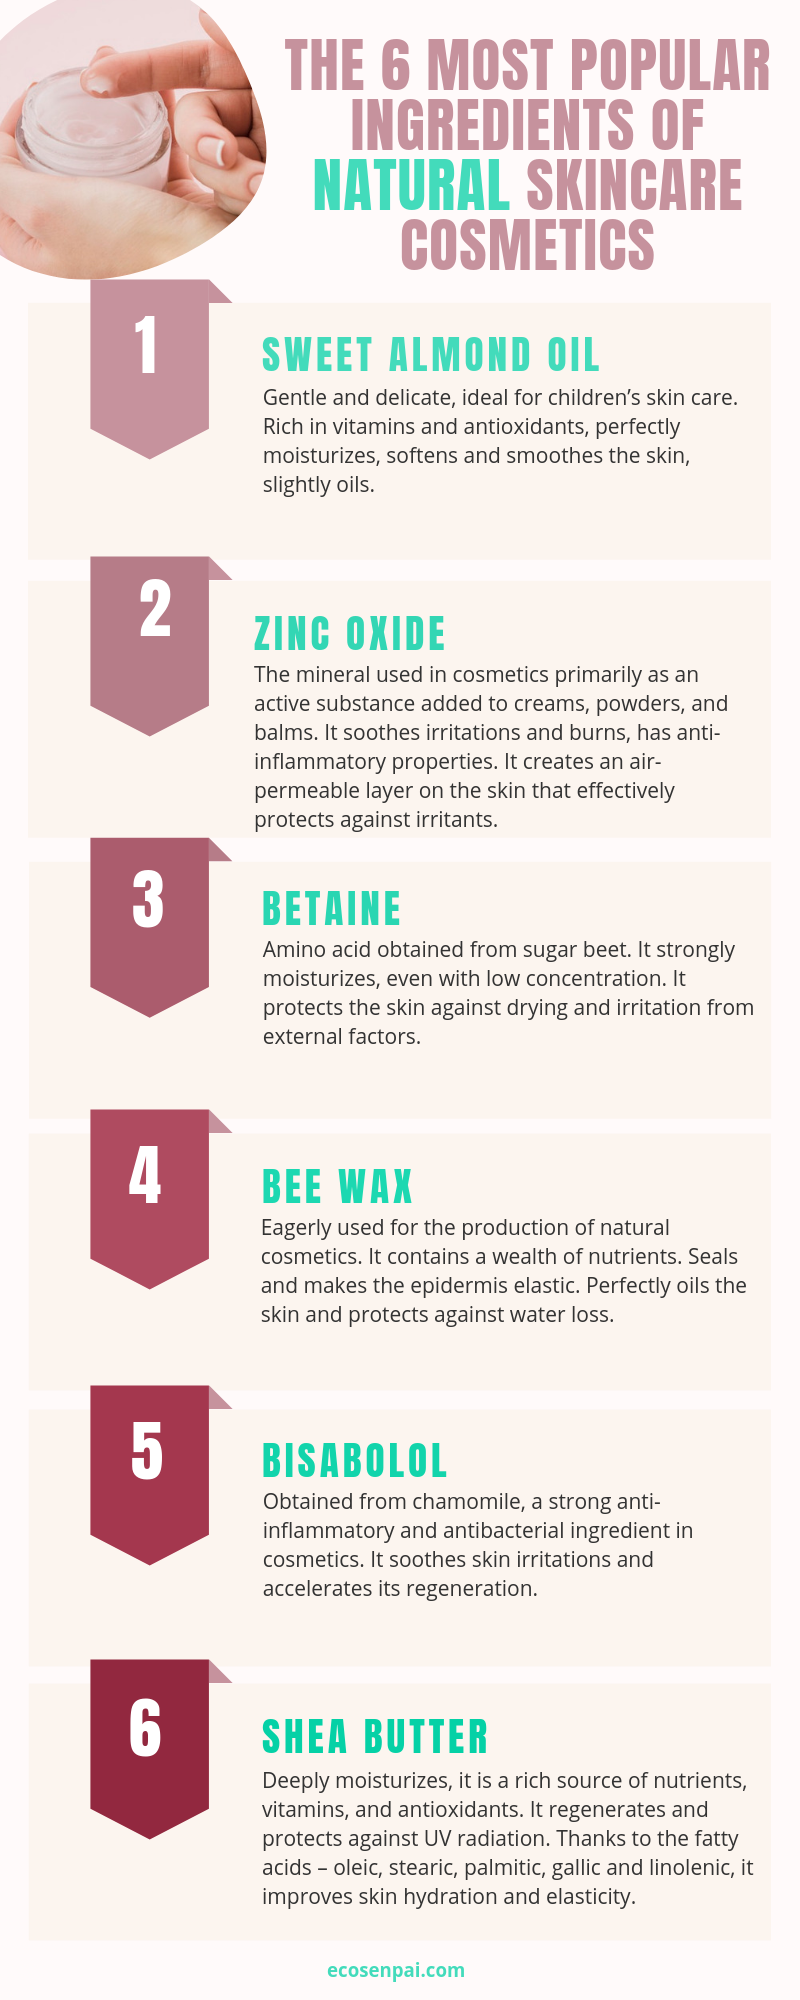 Environment Friendly Products Ideas Of 6 Popular Ingredients Of Natural Skincare Cosmetics For You Cosmetic Skin Care Natural Skin Care Kids Skin Care